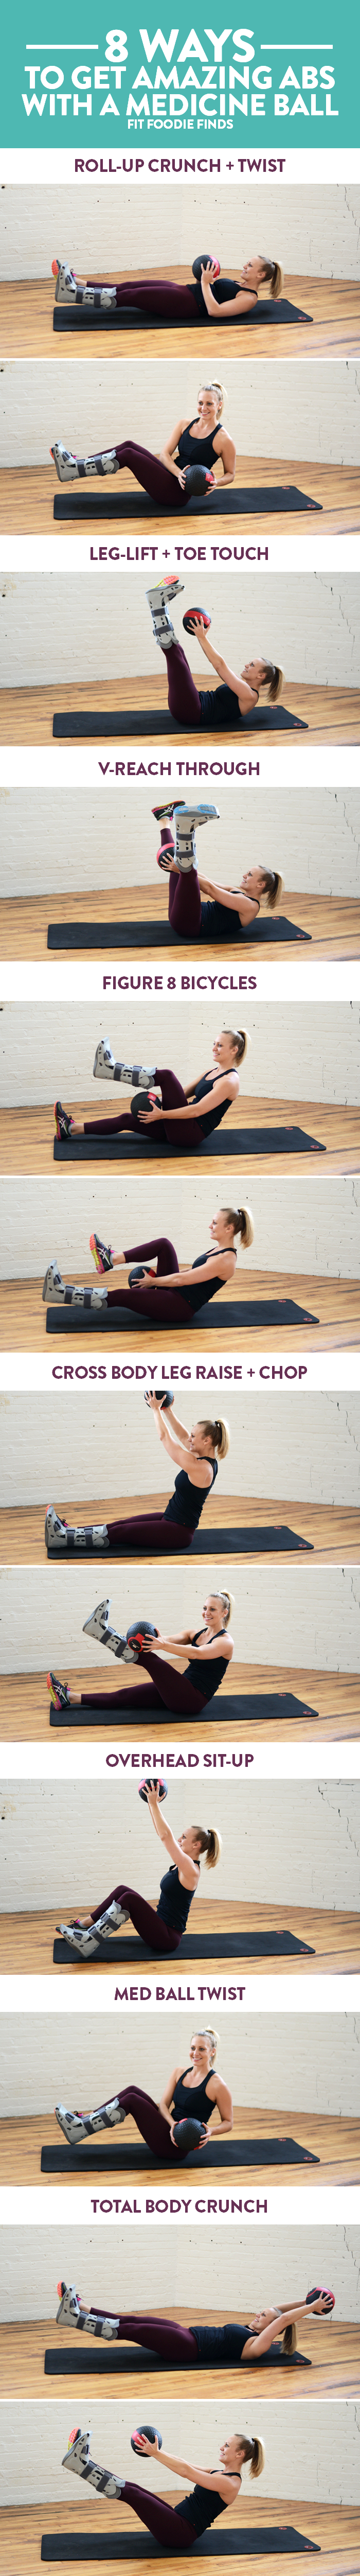 Hanging knee raises with medicine ball - Here S 8 Ways To Get Amazing Abs With A Medicine Ball Plus A Mini